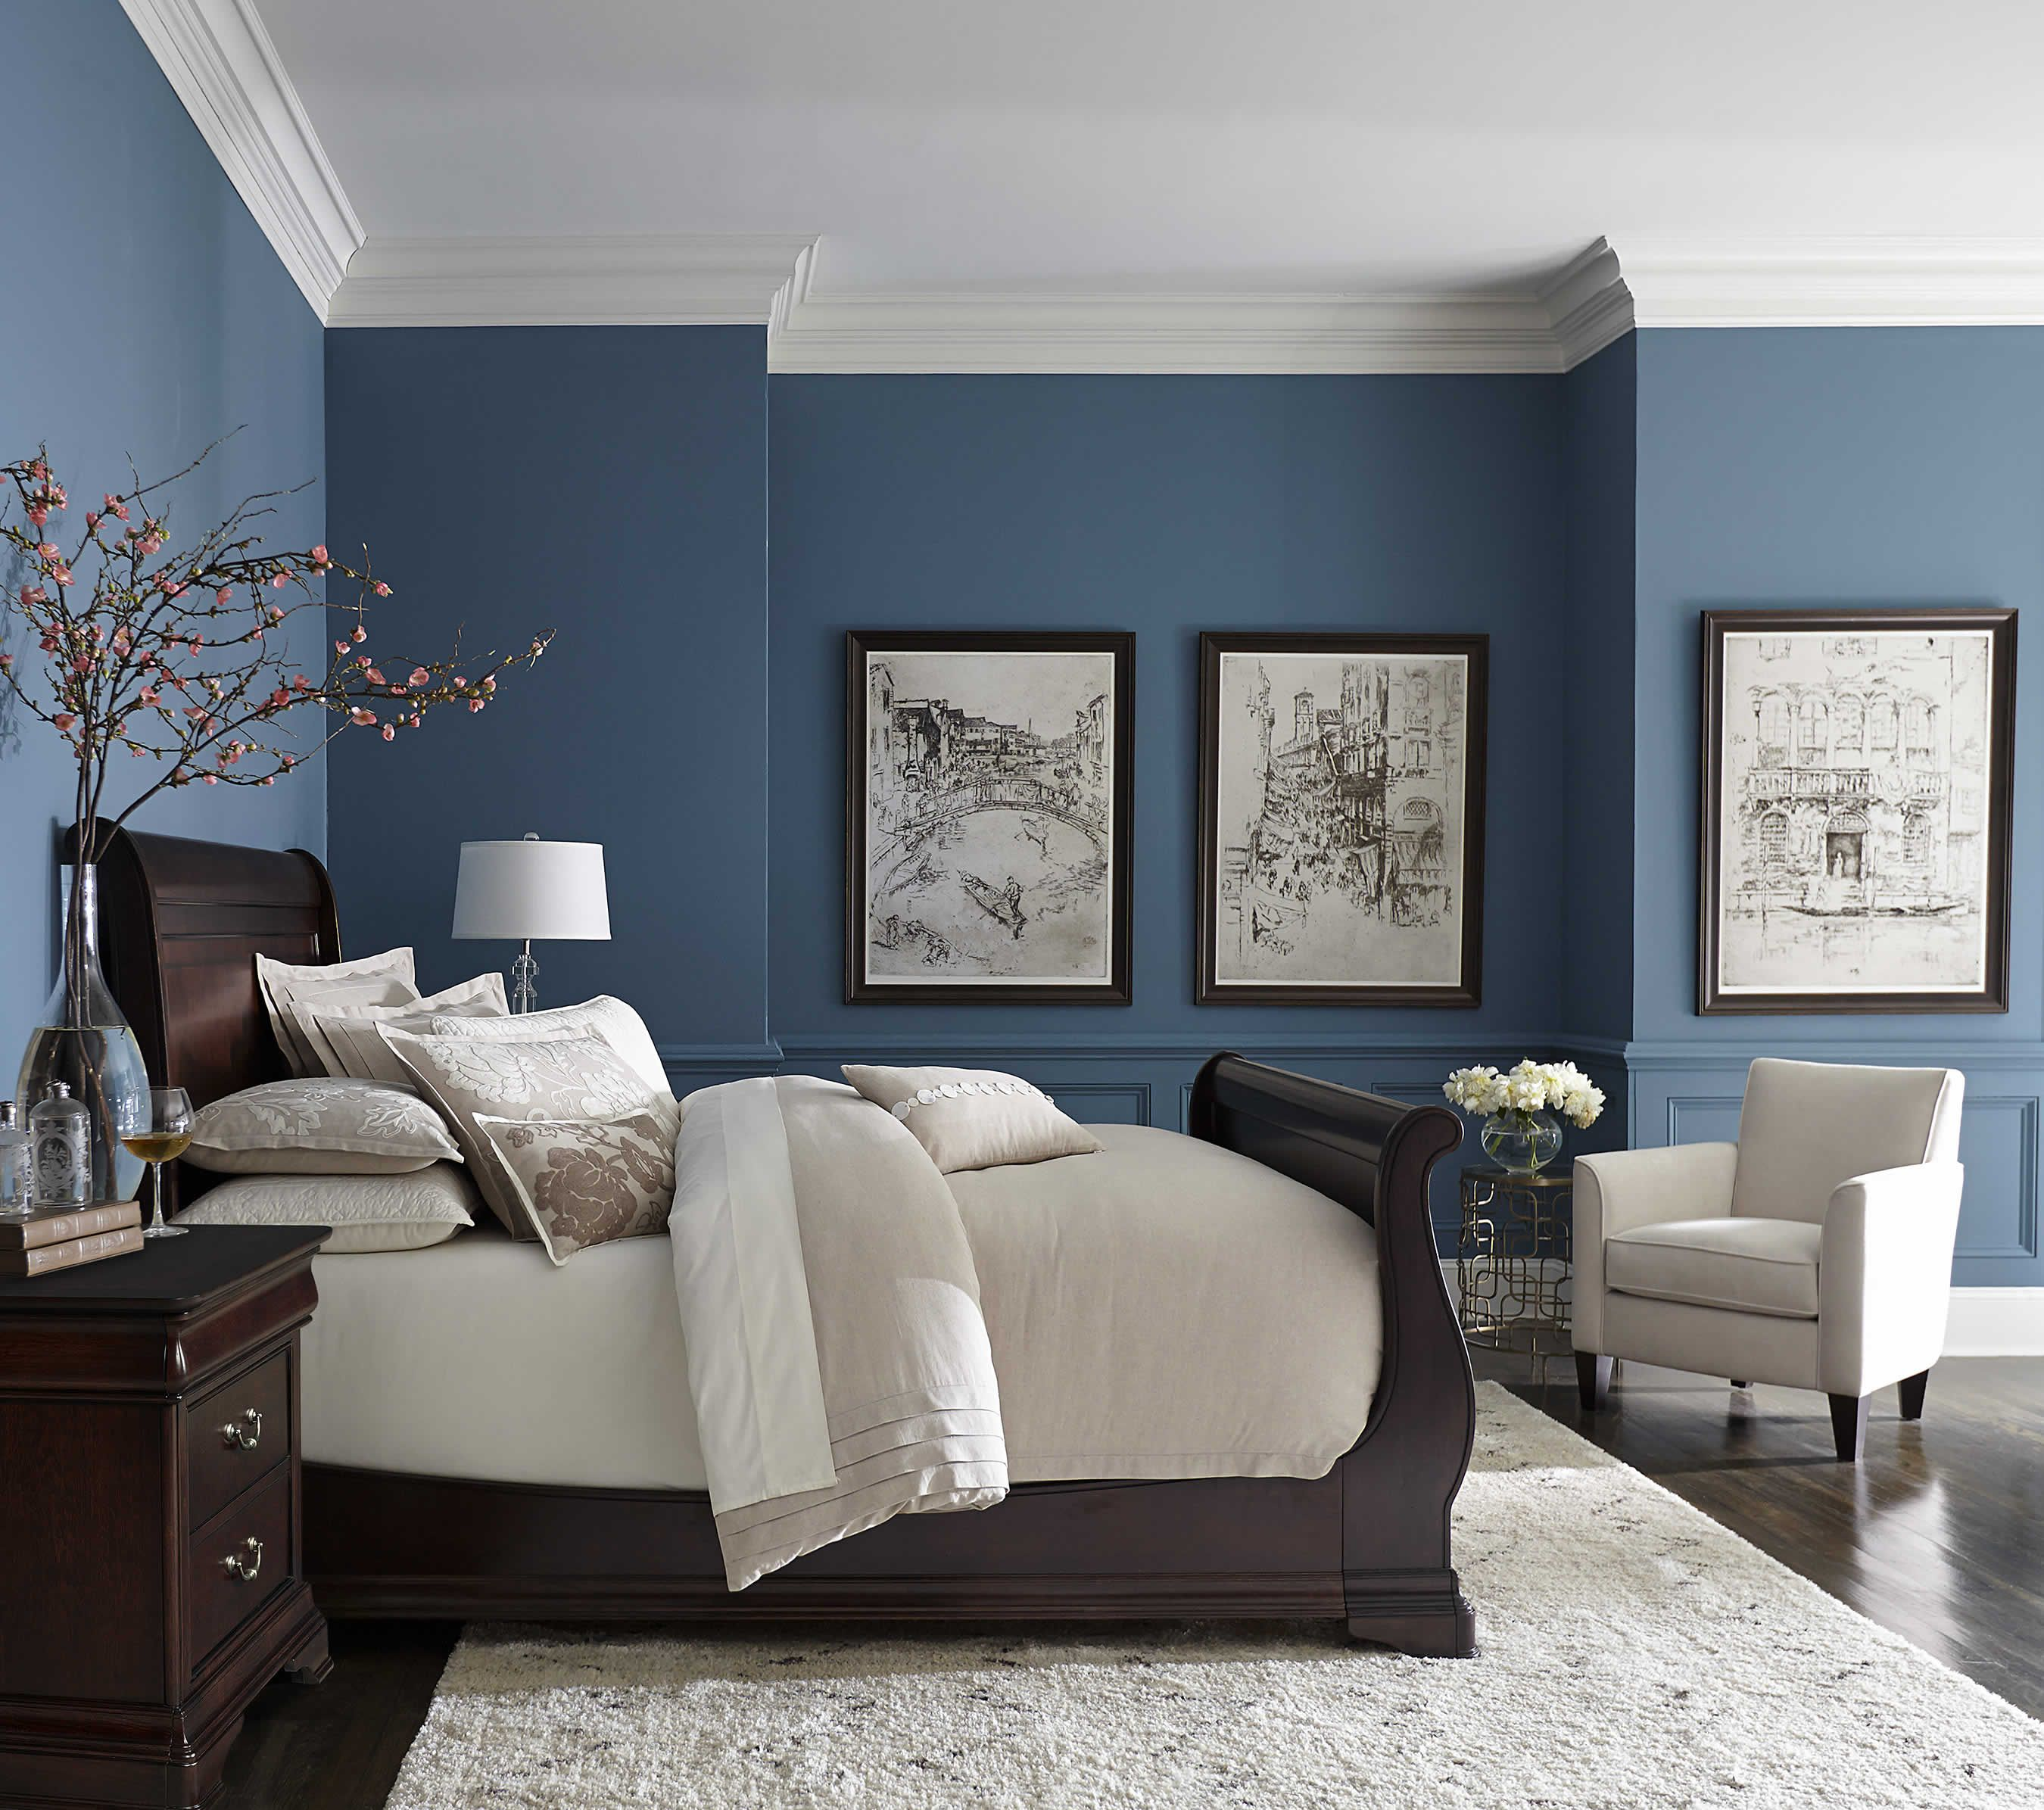 Pretty Blue Color With White Crown Molding Bedrooms In 2019 Home